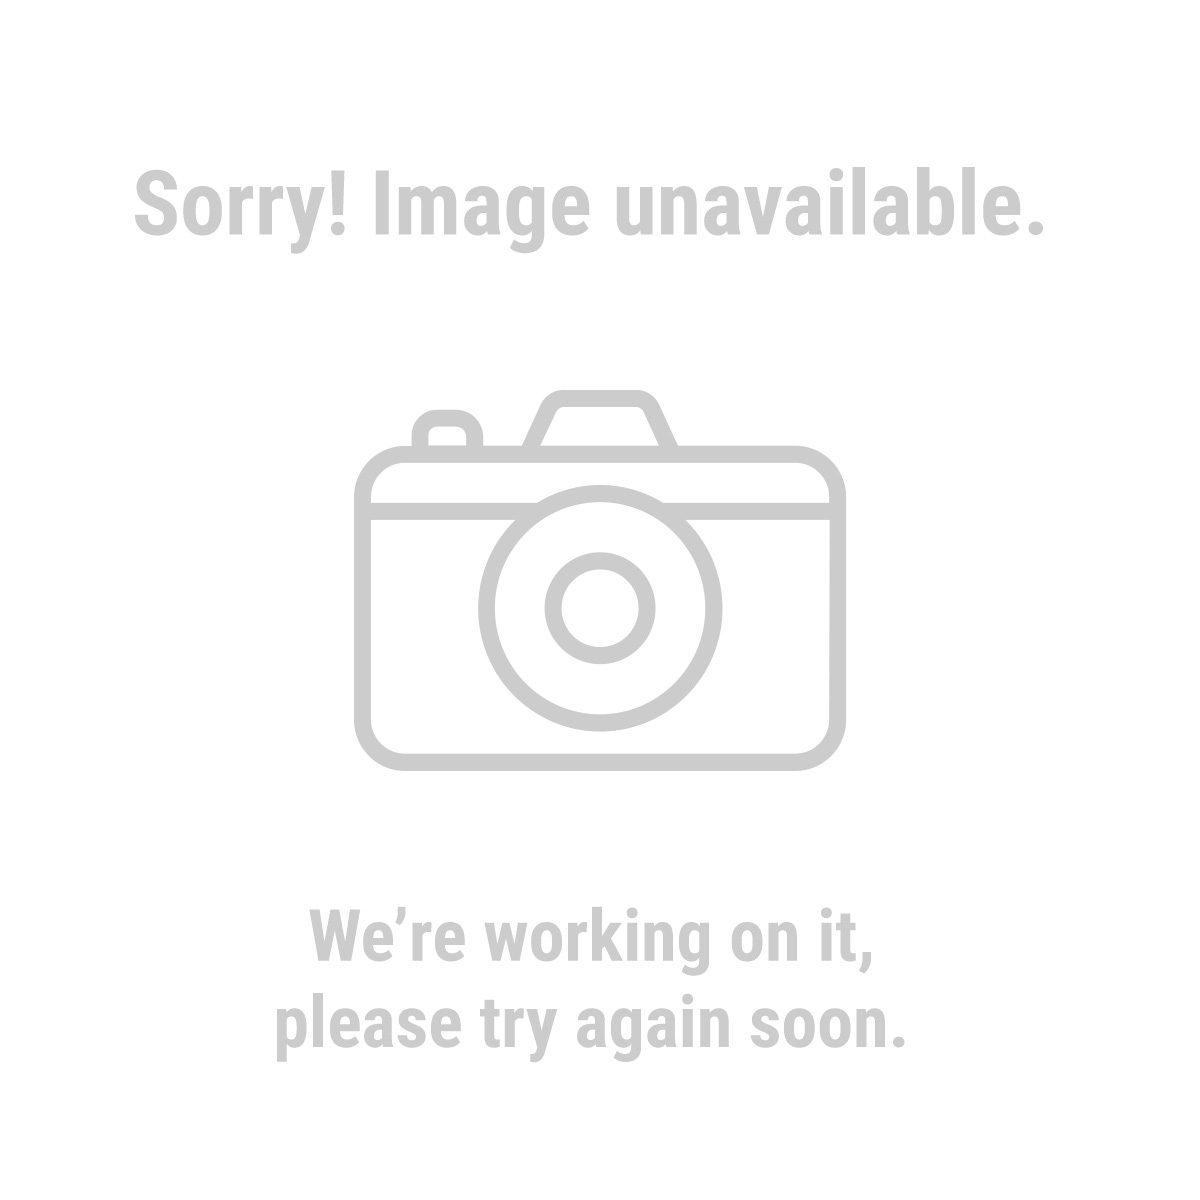 Western Safety 95545 1/2 Finger Antivibration Gloves - X-Large